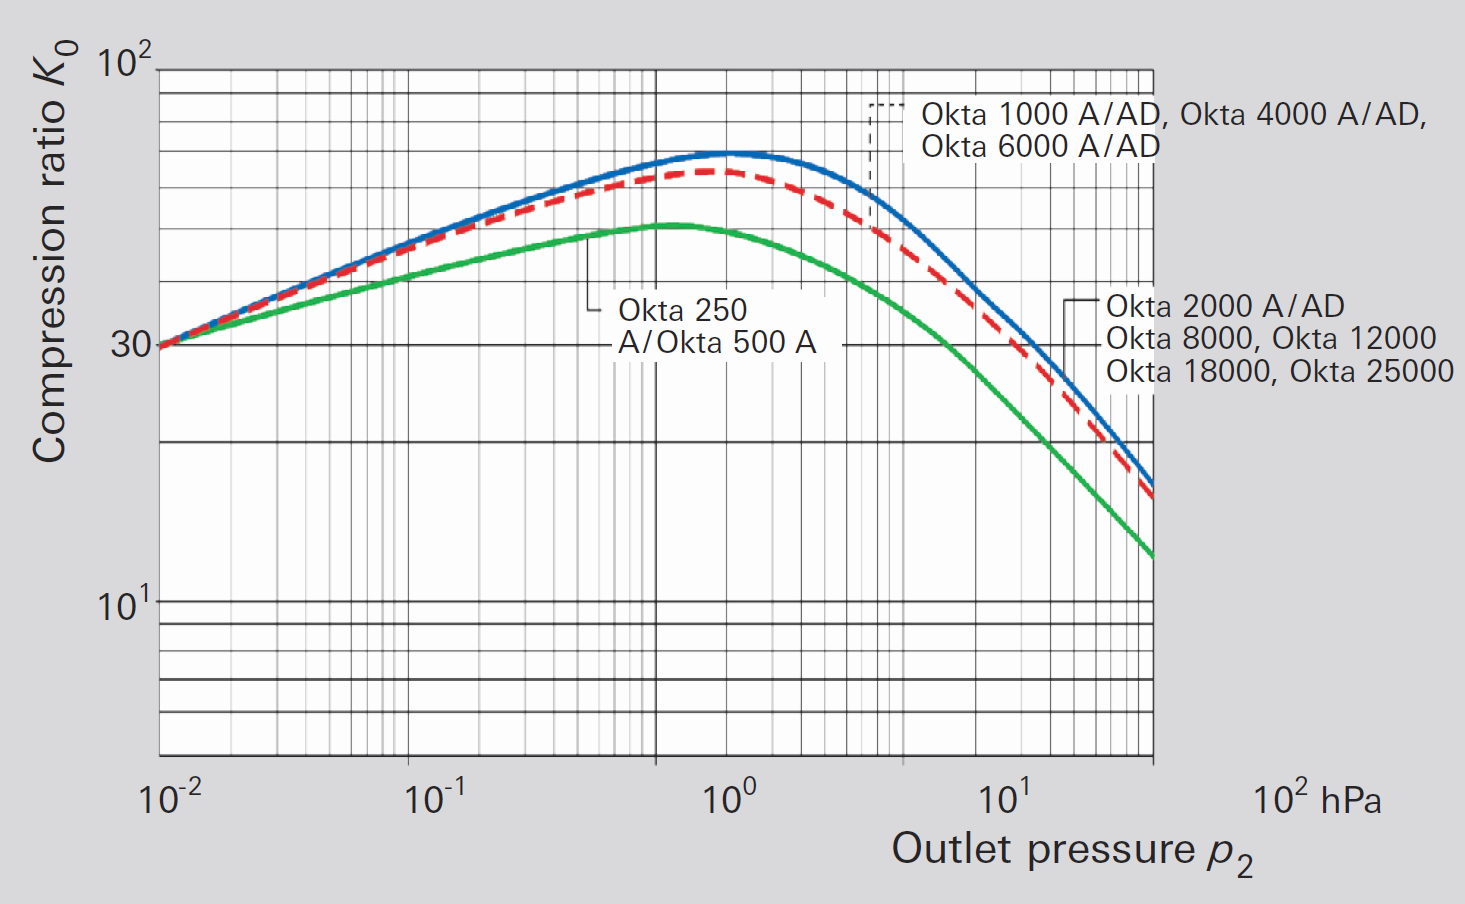 No-load compression ratio for air for Roots